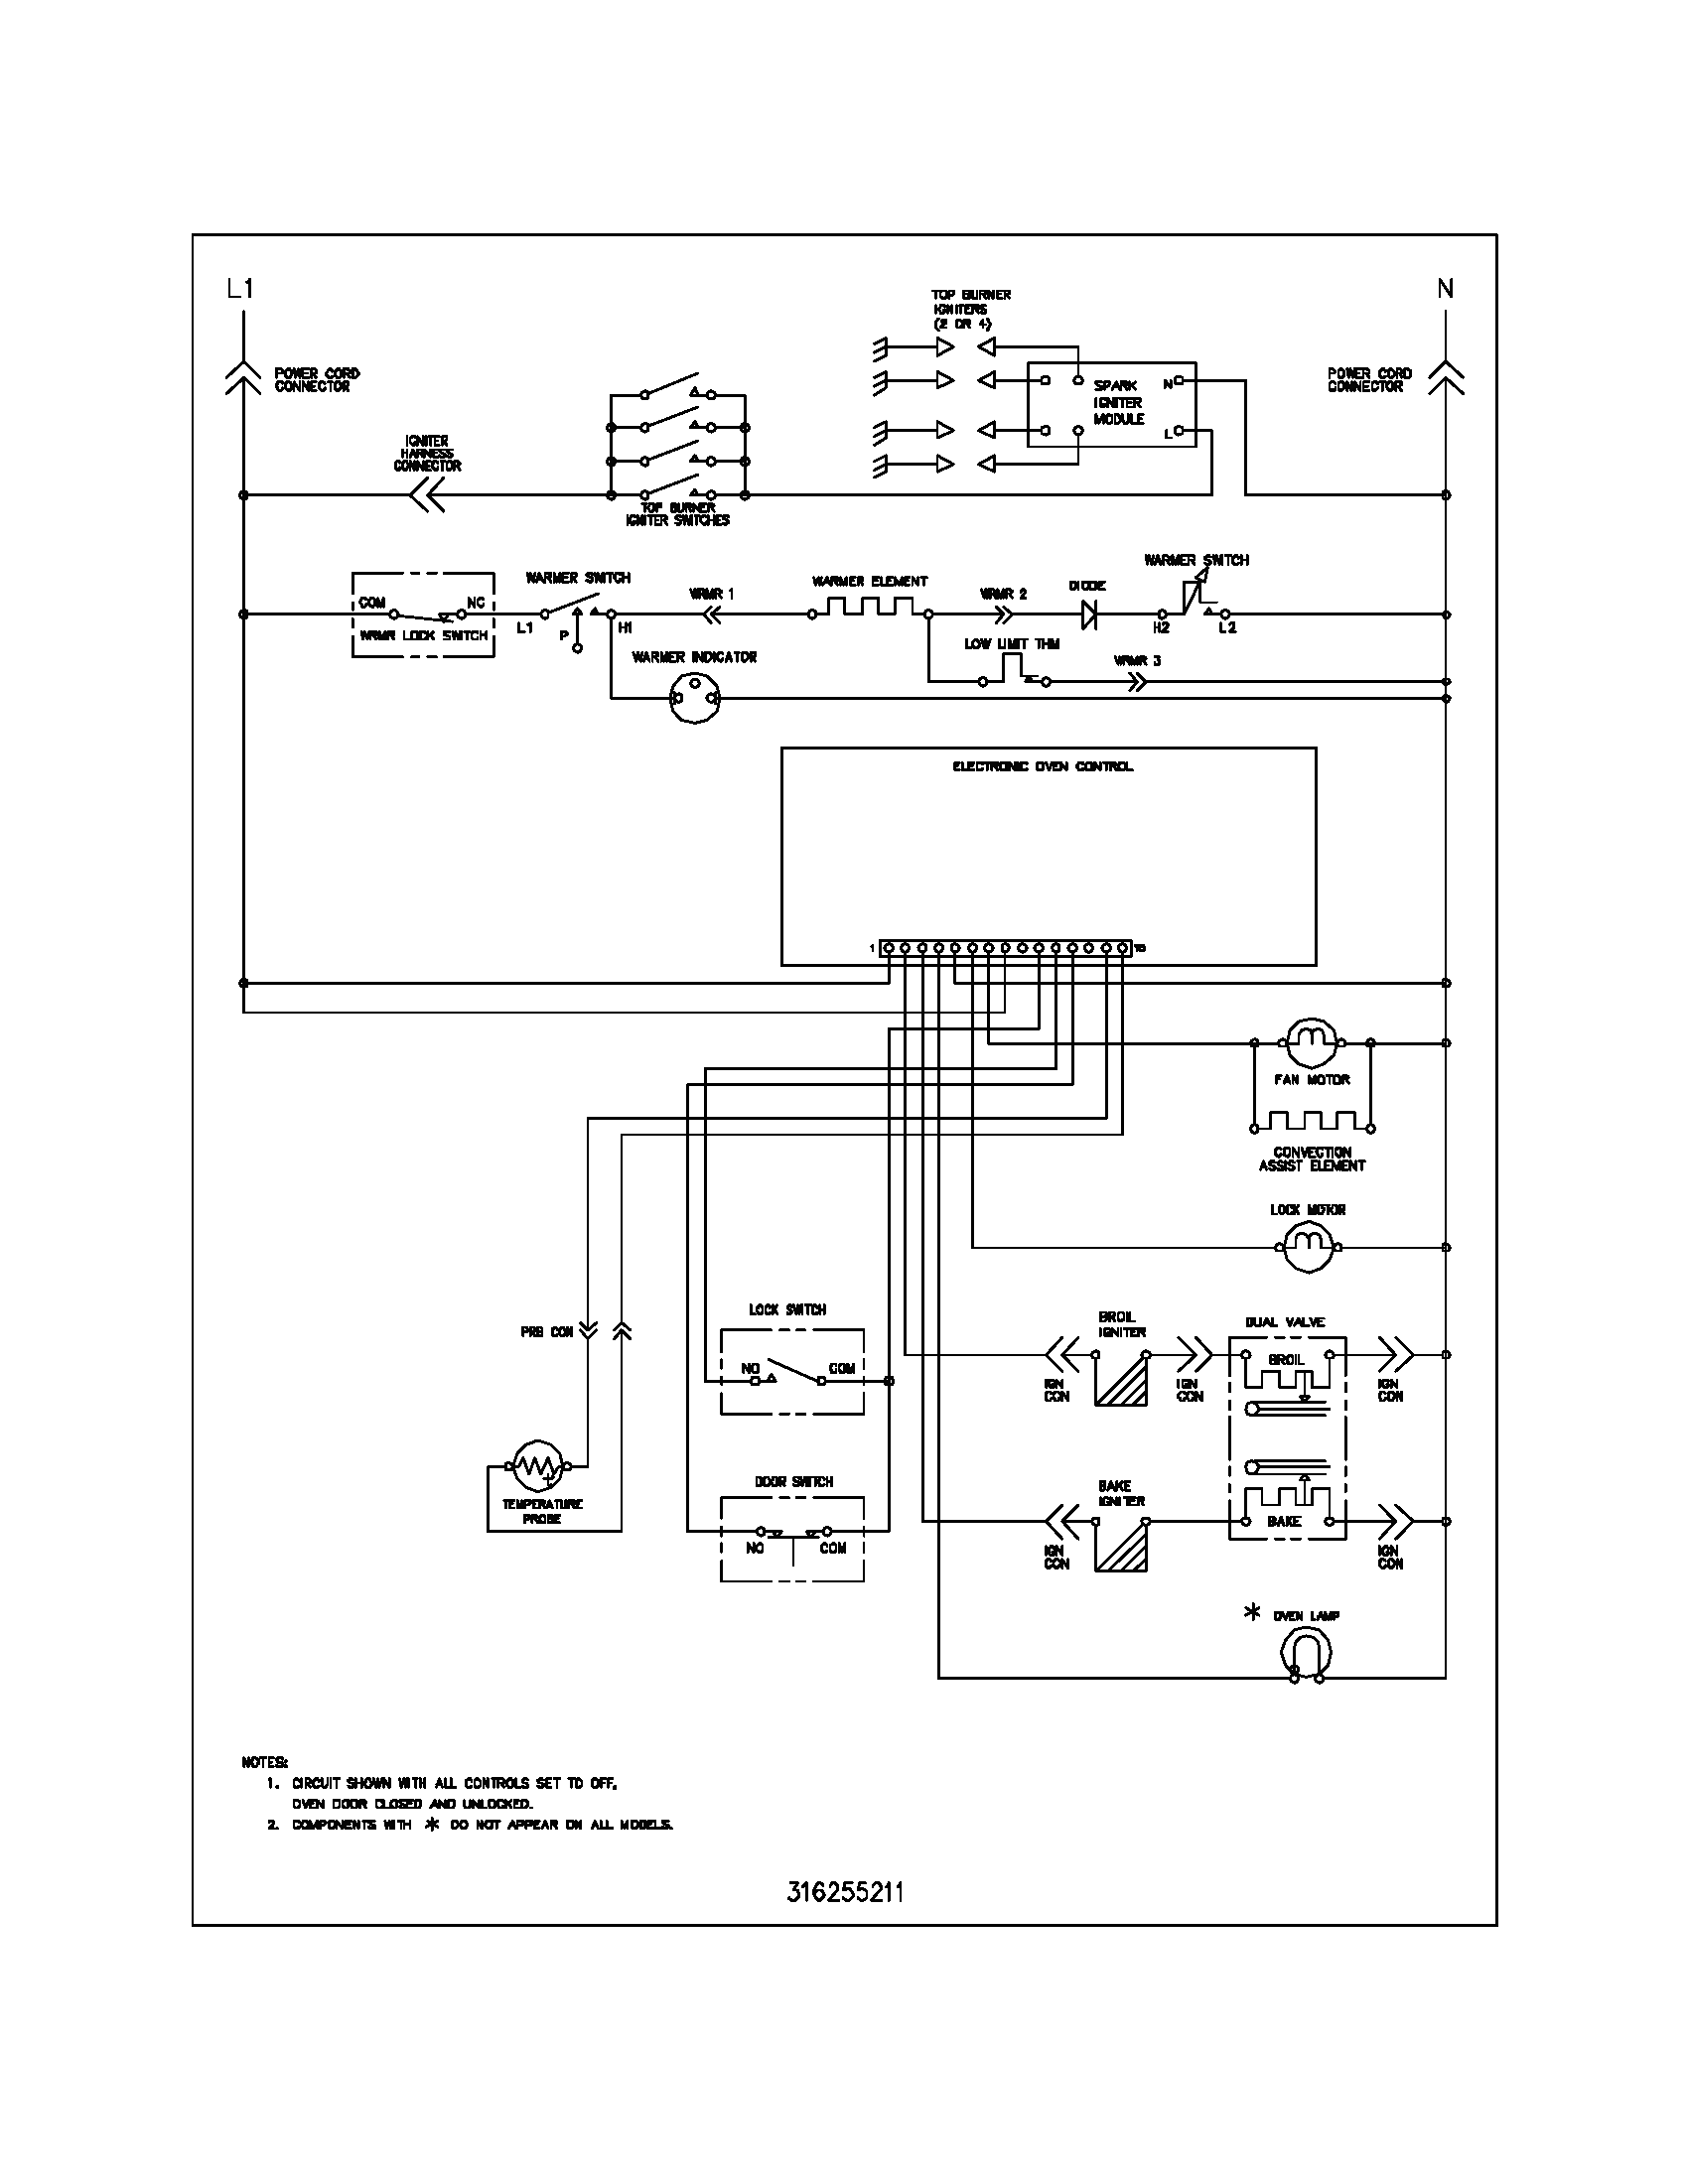 hight resolution of general electric furnace wiring diagram wiring diagrams konsult ge furnace wiring diagram wiring diagram query furnace